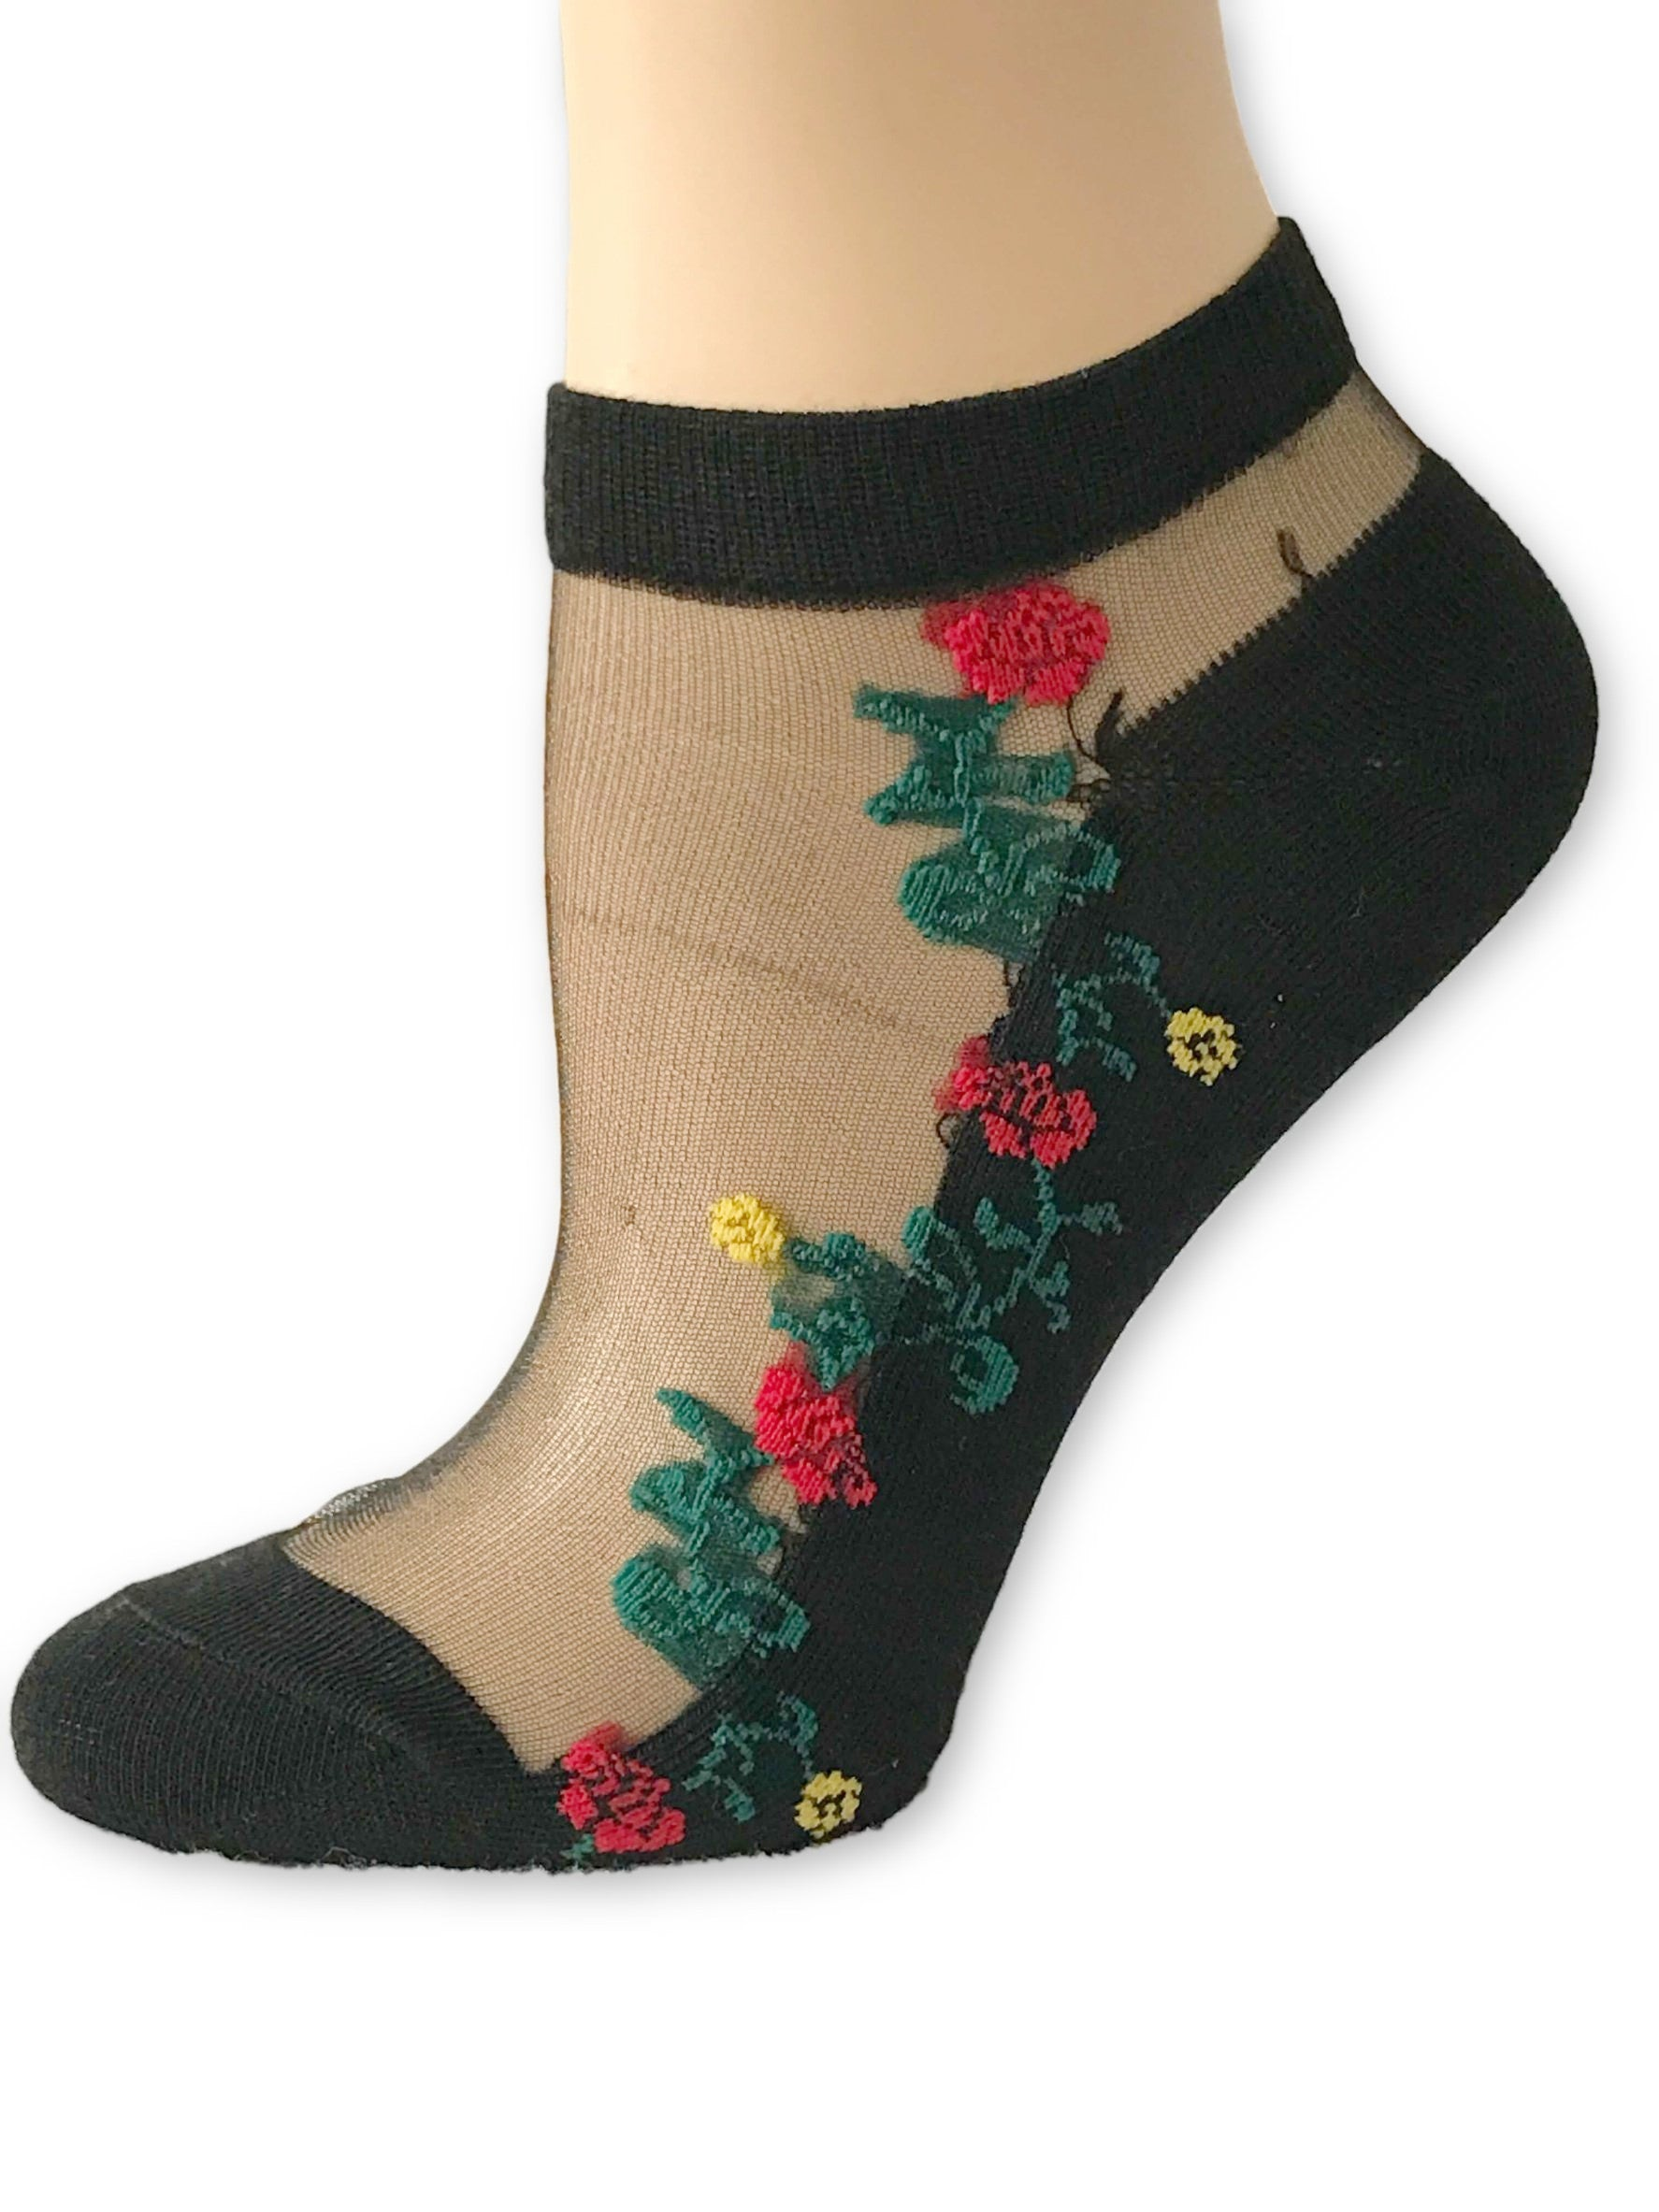 Red/Green Flowers Ankle Sheer Socks - Global Trendz Fashion®